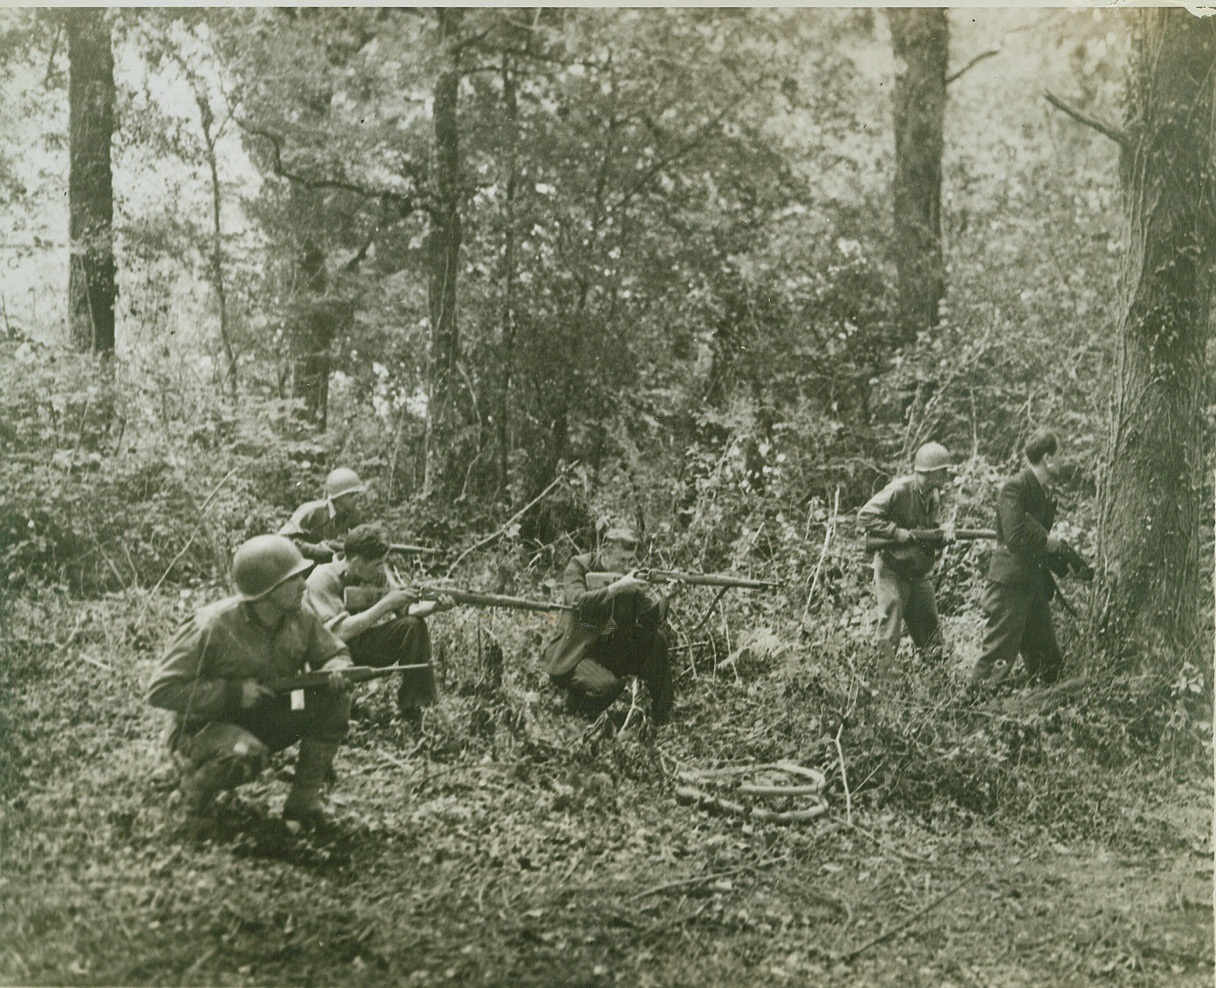 French Patriots Join Yanks, 8/5/1944. FRANCE -- American soldiers get valuable assistance from a group of French patriots in hunting down Nazi snipers during mop up operations in a wooded sector outside a town. In Brittany these patriots have given invaluable aid and are credited with being partly responsible for the great speed of the American push. Credit: (ACME);